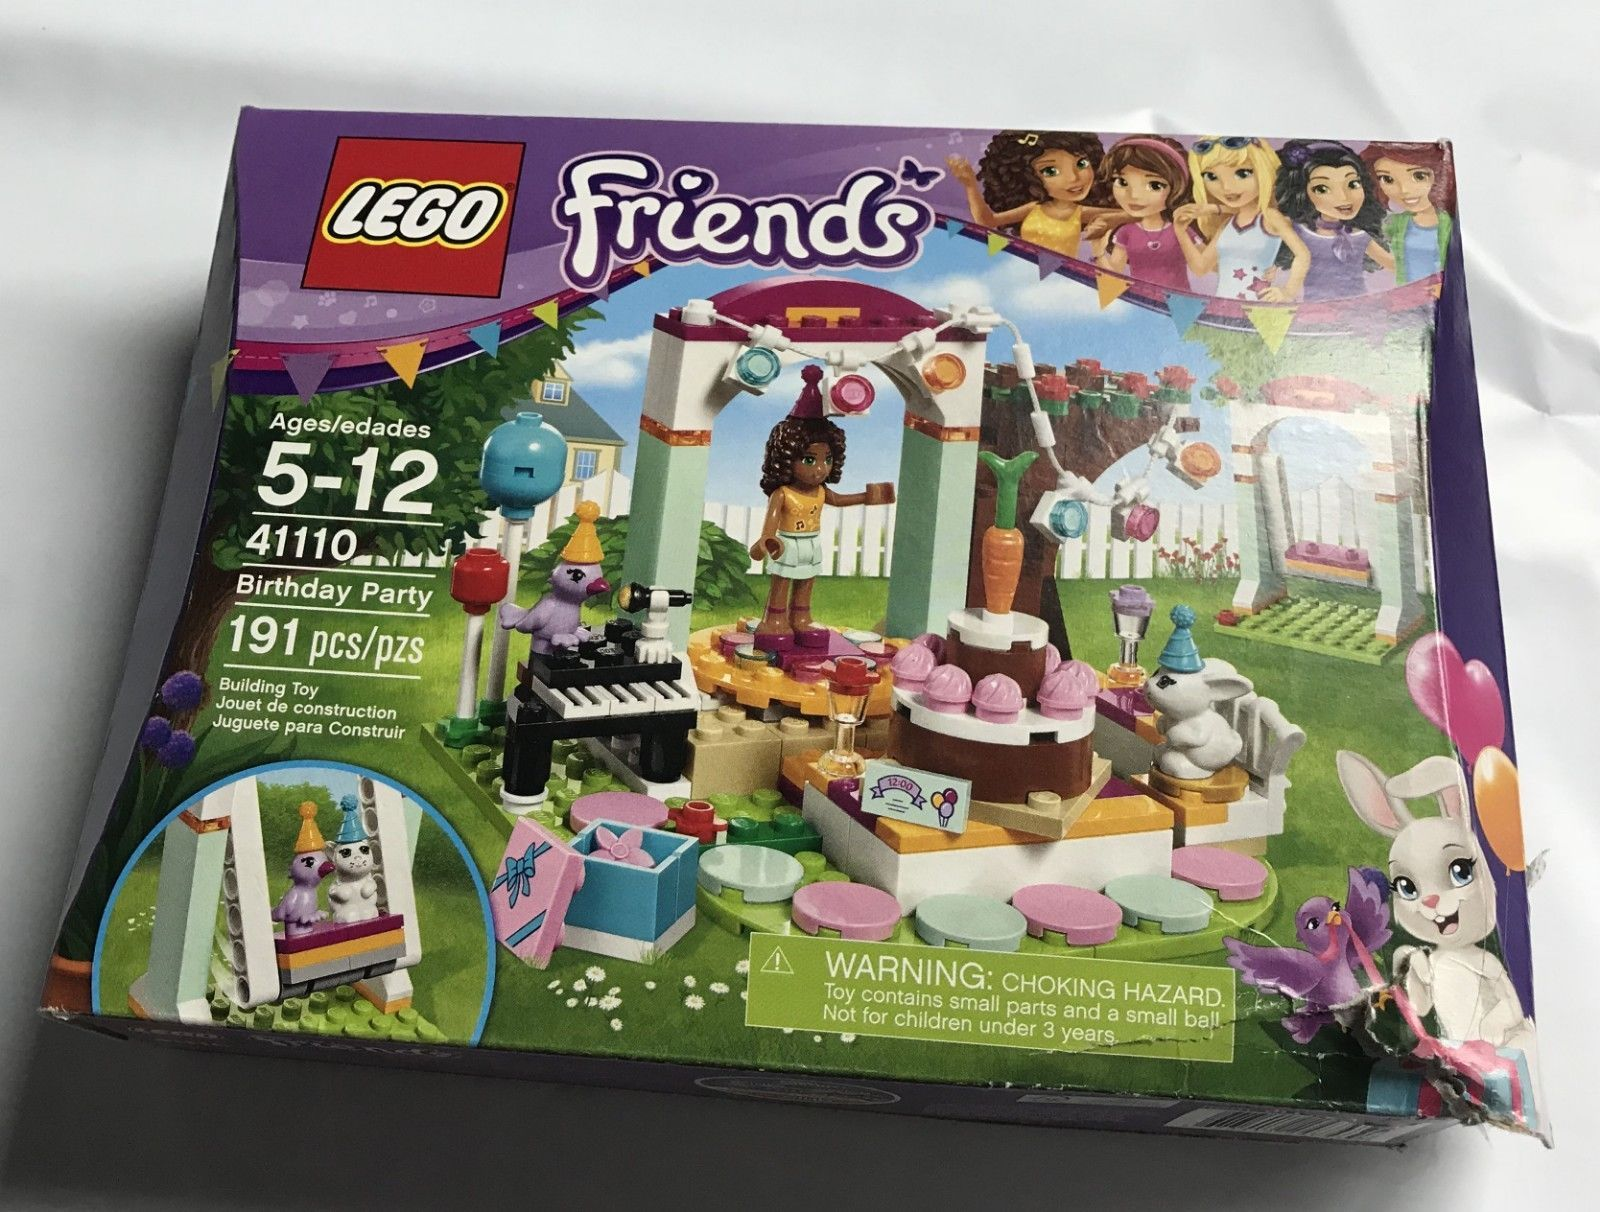 NEW Lego Friends 41110 Birthday Party w/ Andrea 191 pcs 2016 Building Toy